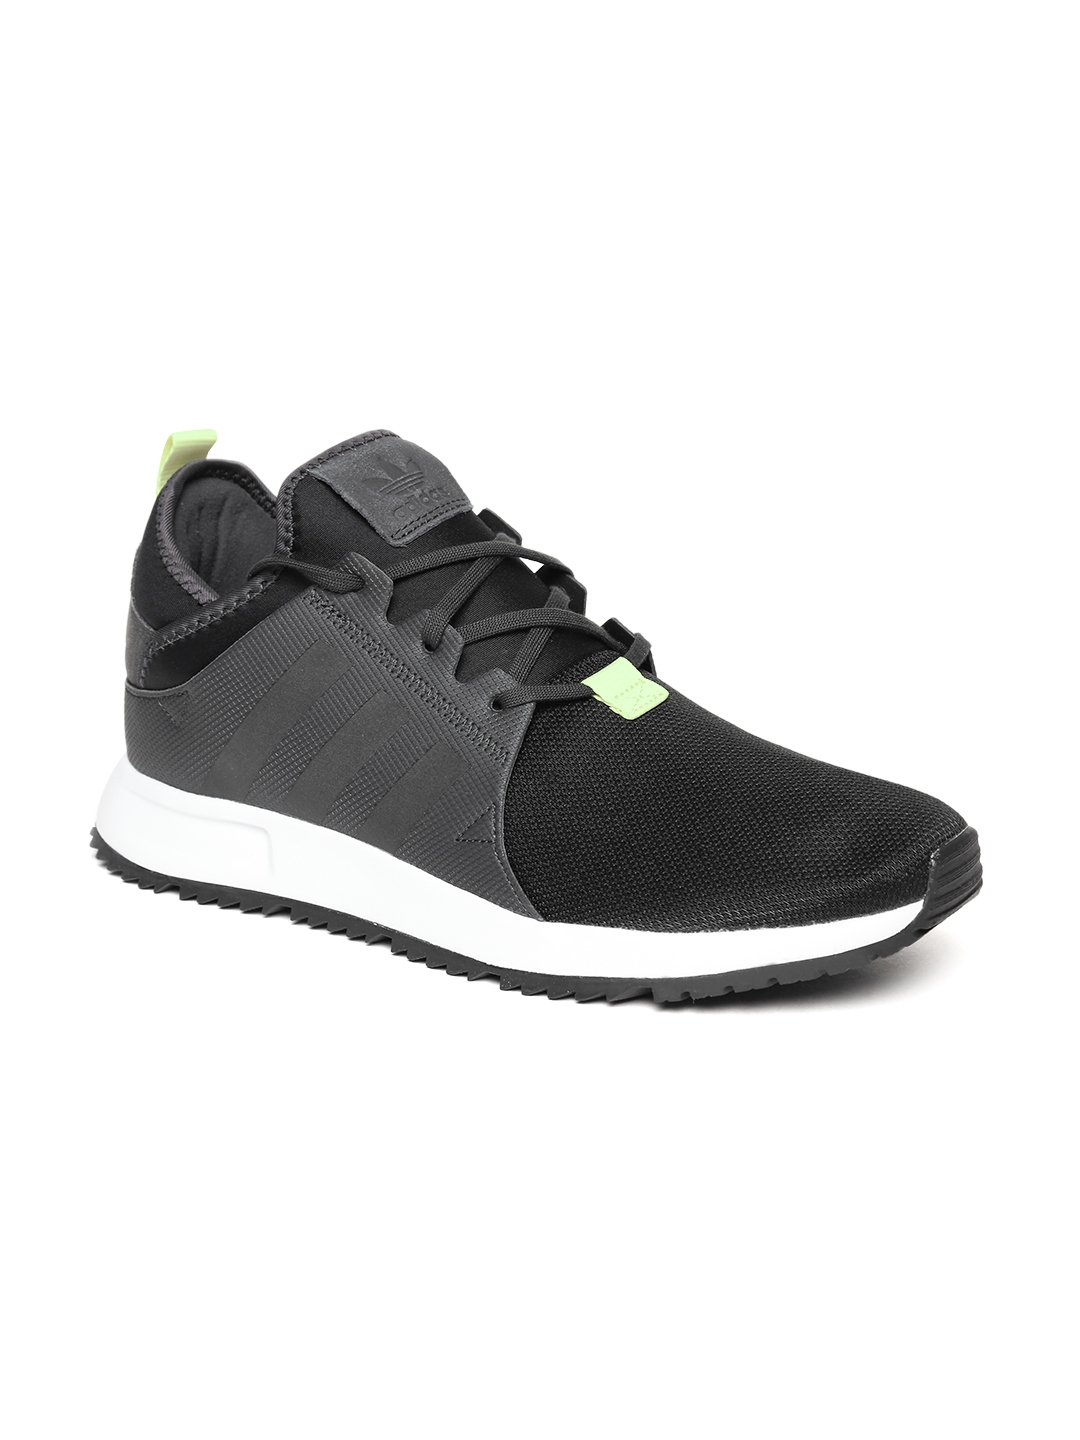 9d05bef4088 Buy Adidas Originals Men Black X PLR SNKRBOOT Sneakers - Casual ...